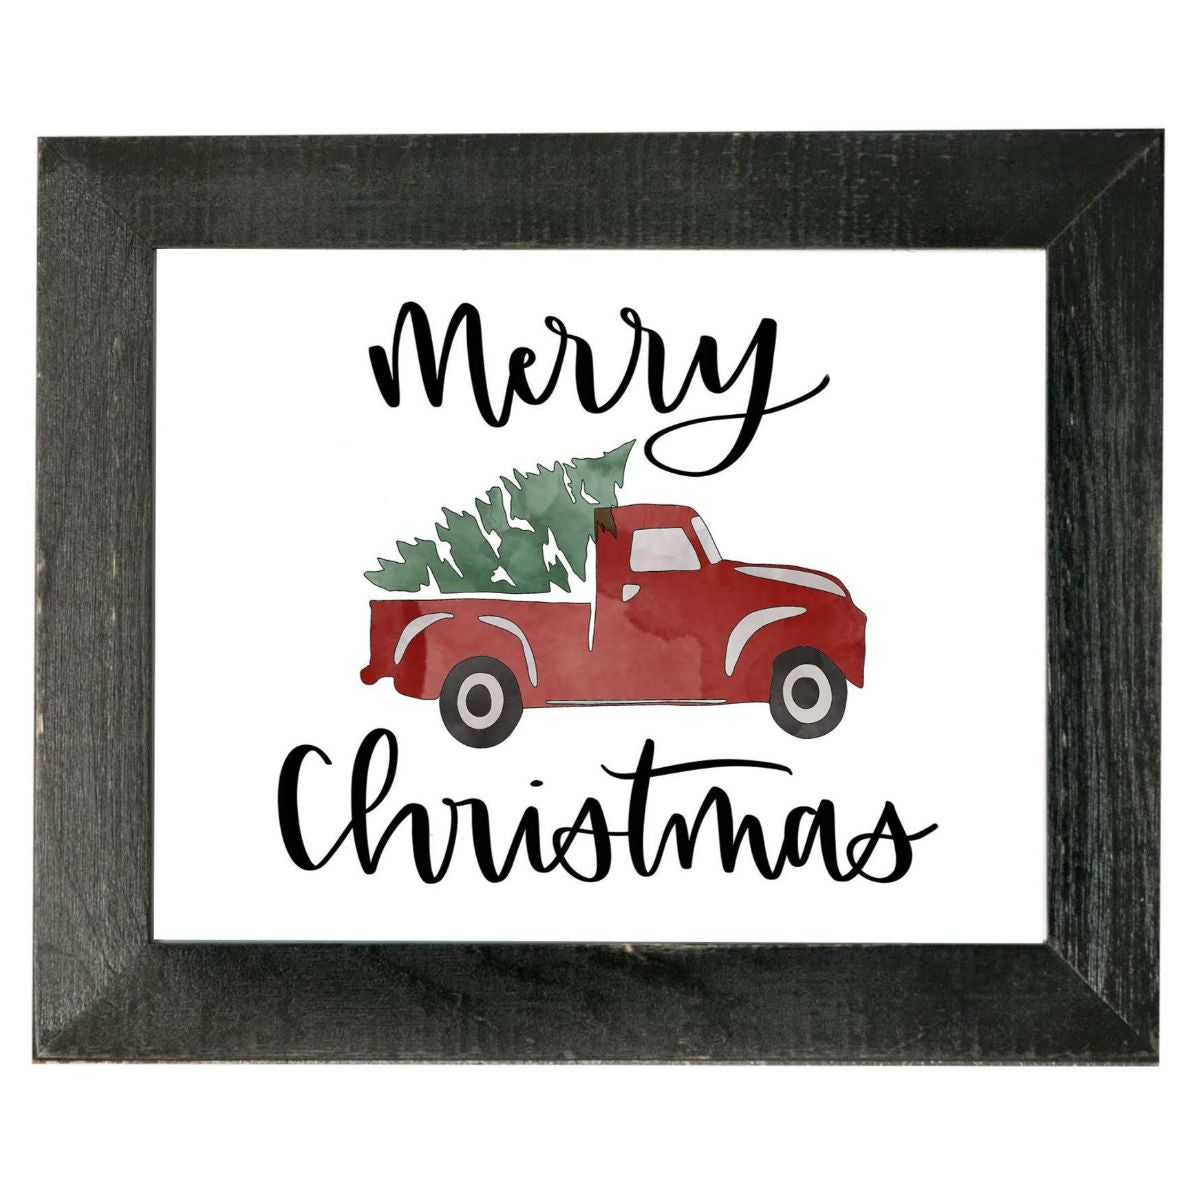 Christmas Red Truck.11x14 Merry Christmas Red Truck Wall Decor